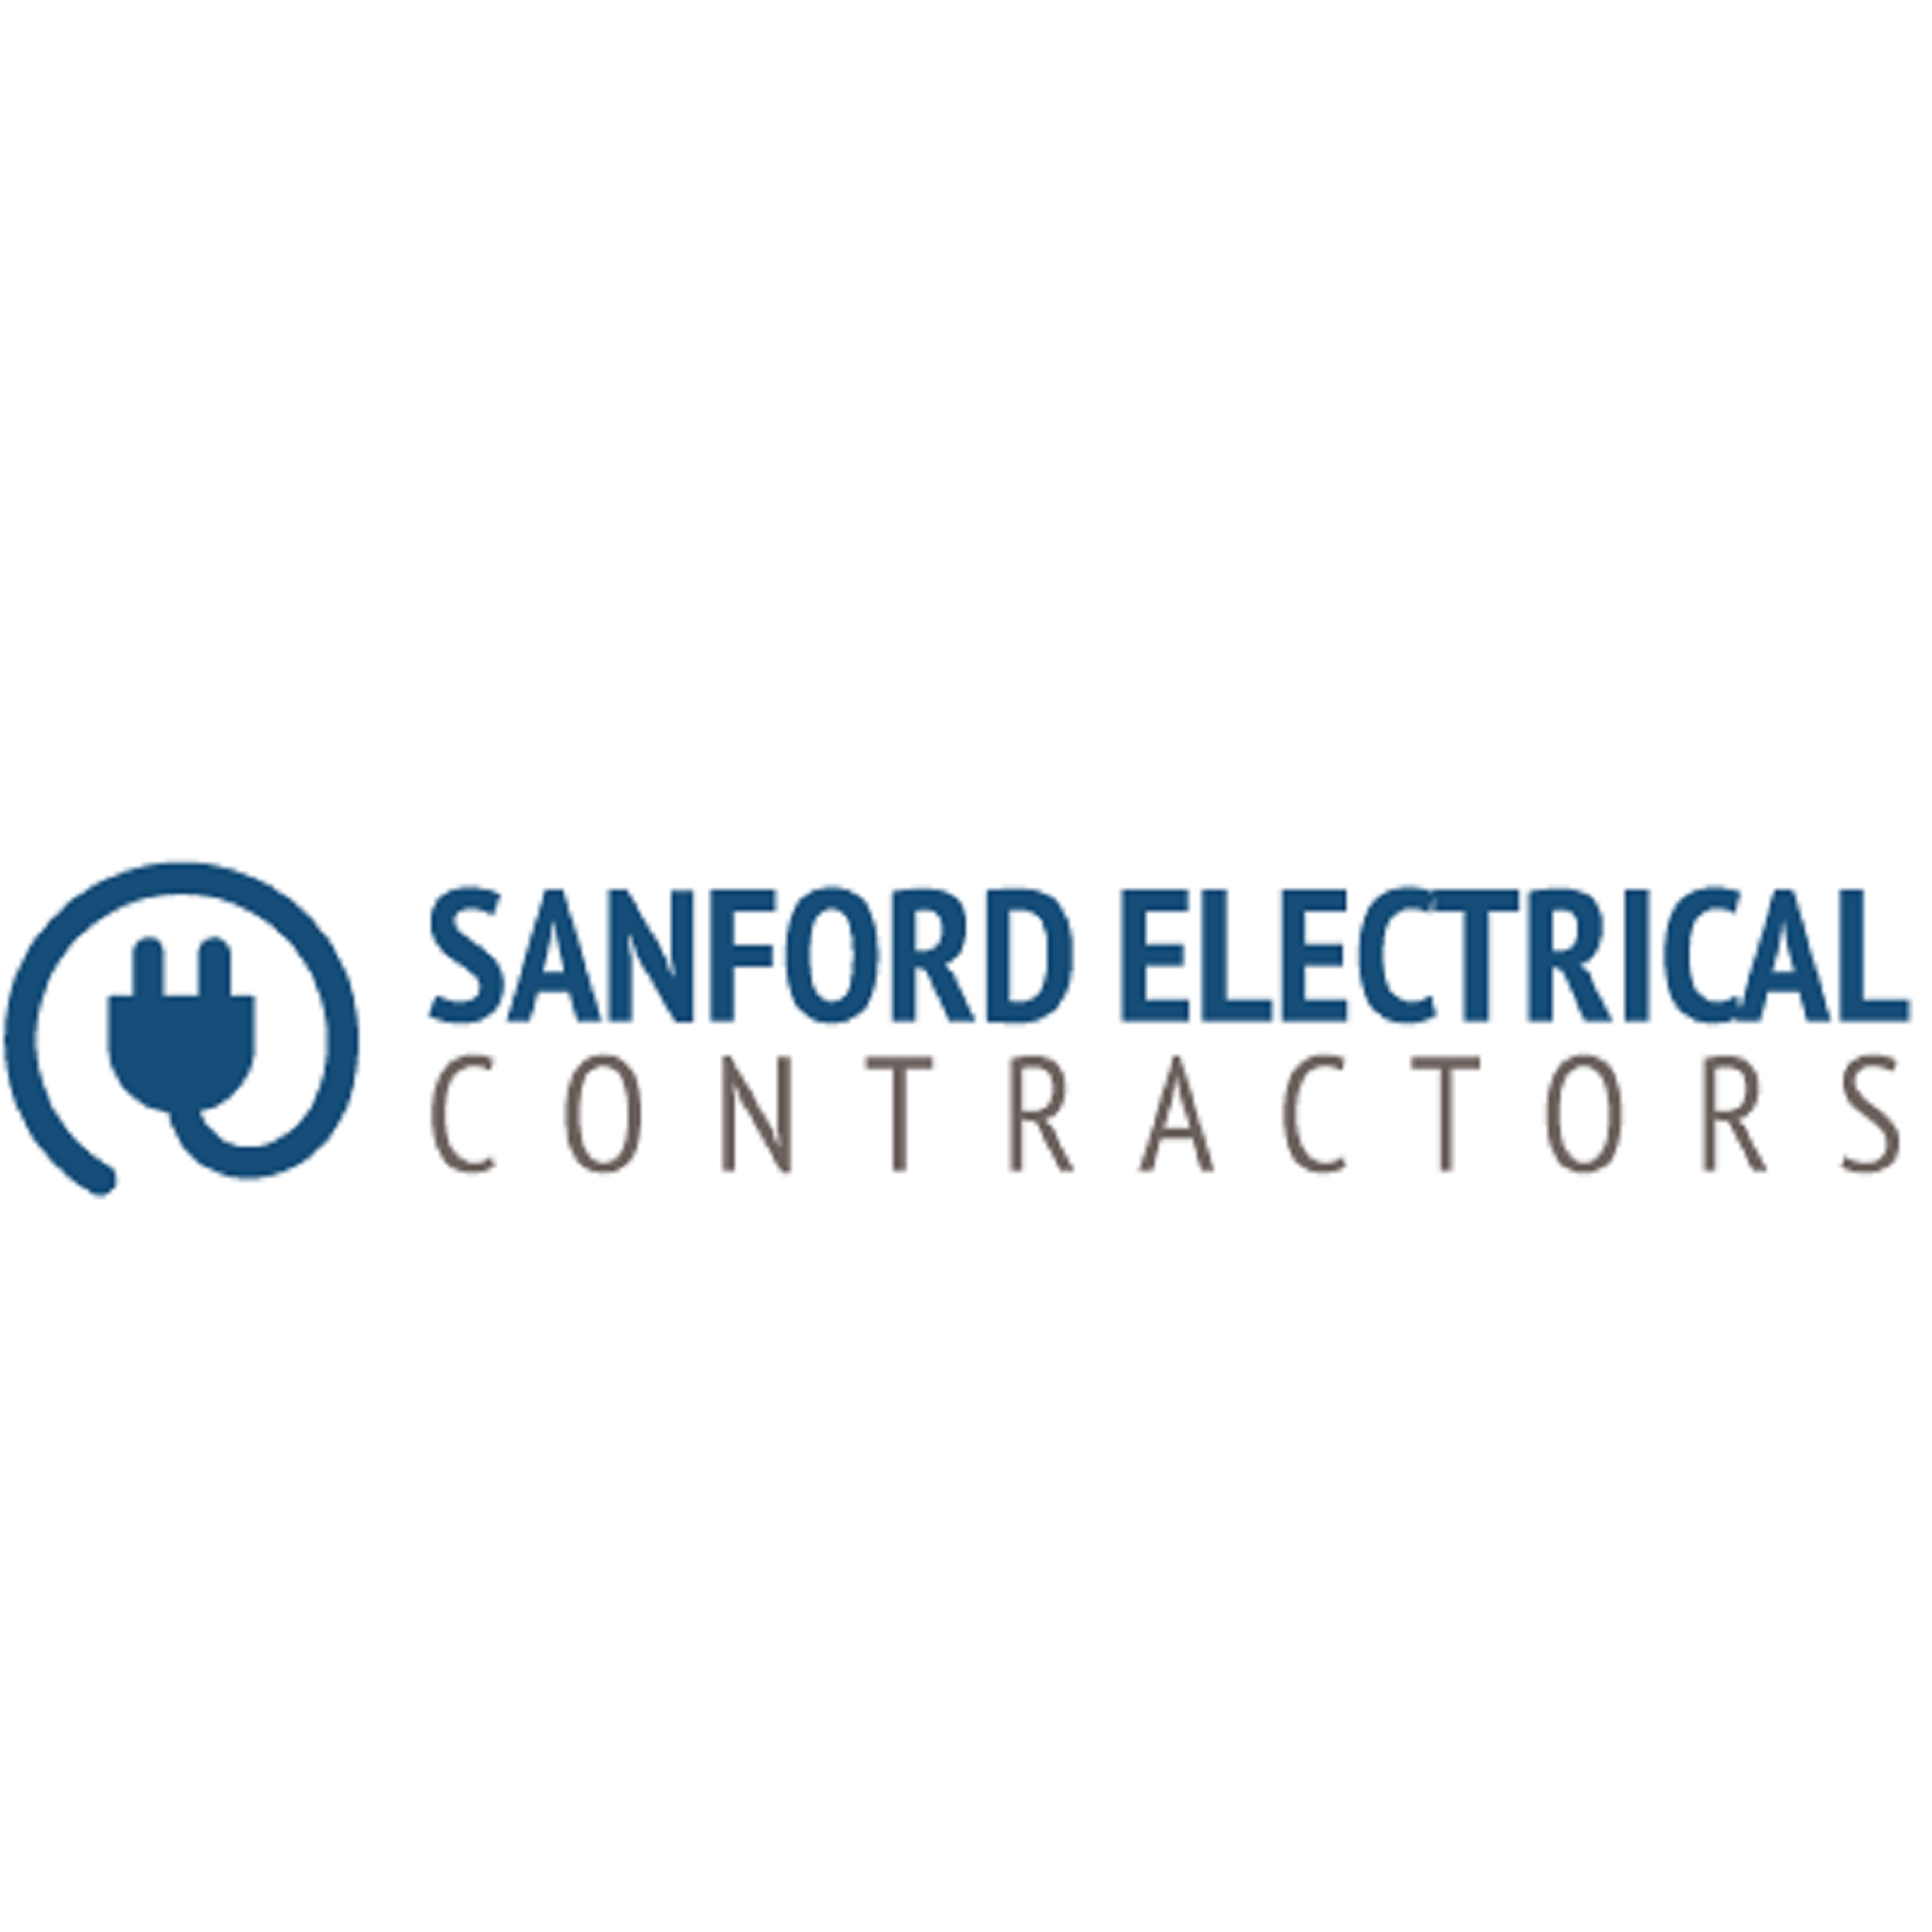 Sanford electrical contractors coupons near me in 8coupons for Local builders near me